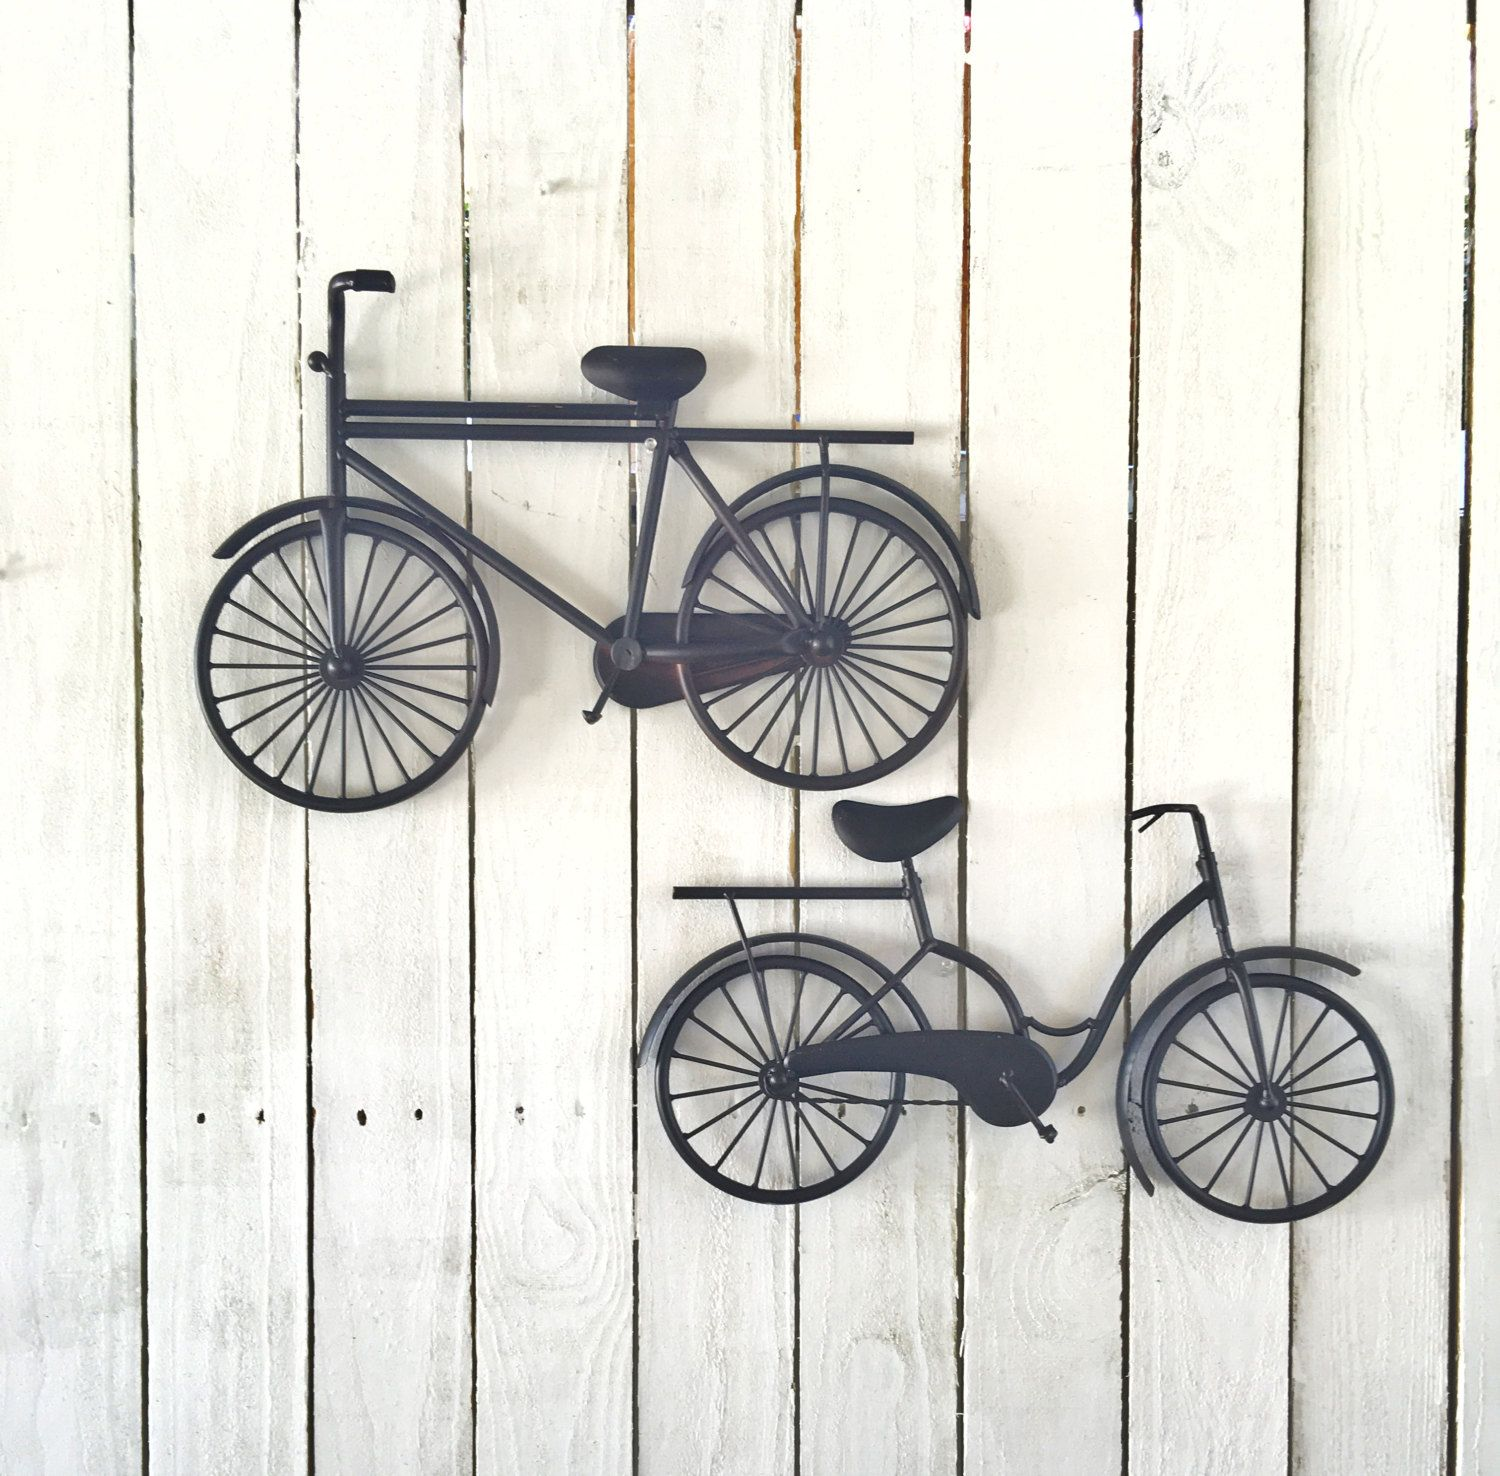 Laundry Room Decor Bicycle Wall Art Metal Kitchen Art Laundry Sign Powder Room Wash Clothes Cyclist Distres Bicycle Wall Art Laundry Room Decor Bicycle Decor